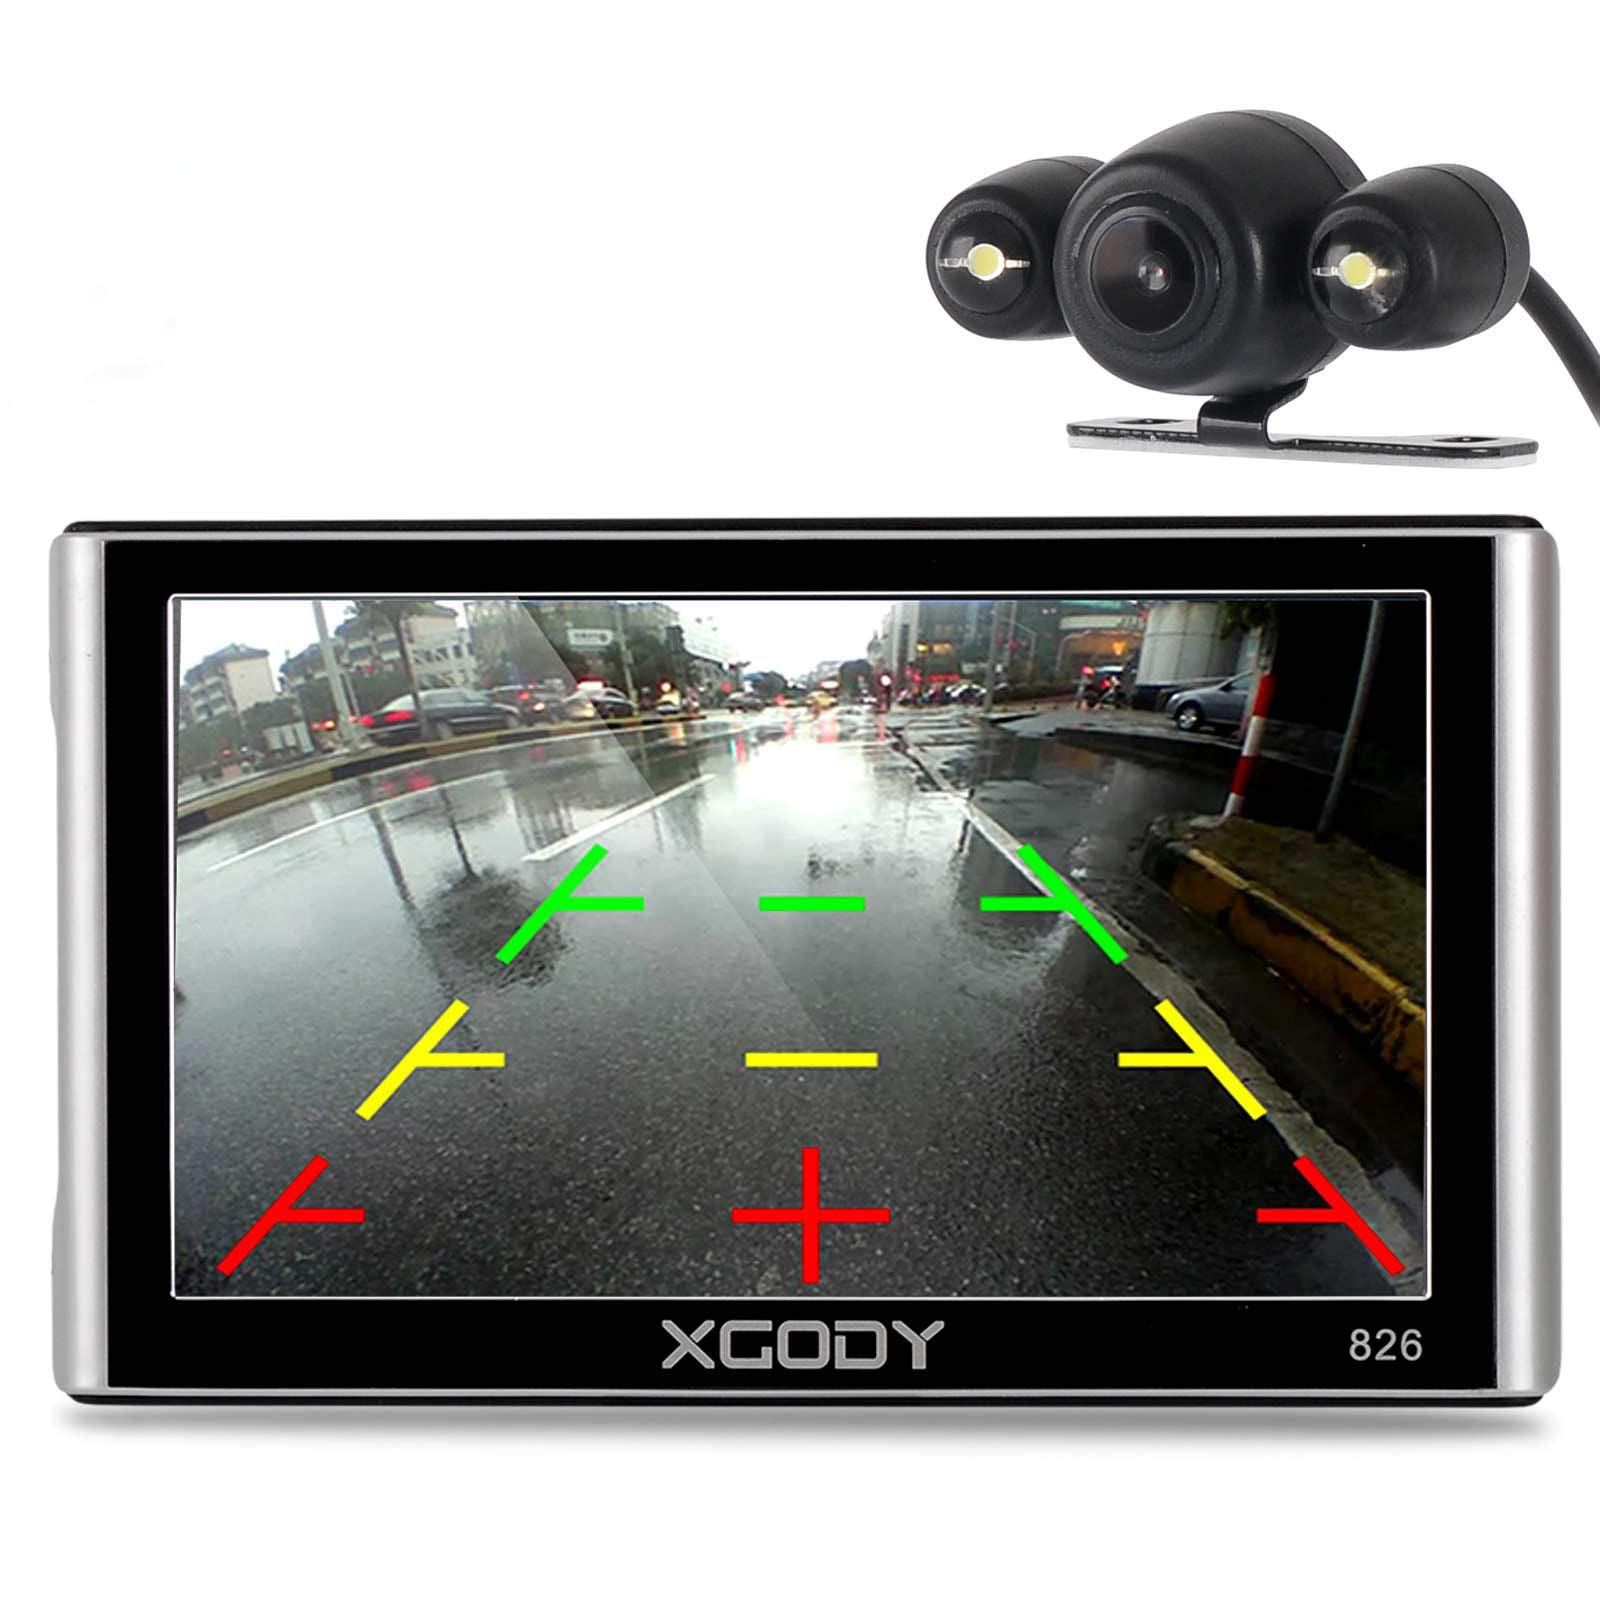 Xgody 826BT Car GPS Navigation with 6 Meters Backup Camera 7'' 256MB/8GB Sunshade Capacitive Touch Screen Trucking GPS NAV Lifetime Map Updates Speed Limit Displays Spoken Turn-by-Turn Directions by XGODY (Image #1)